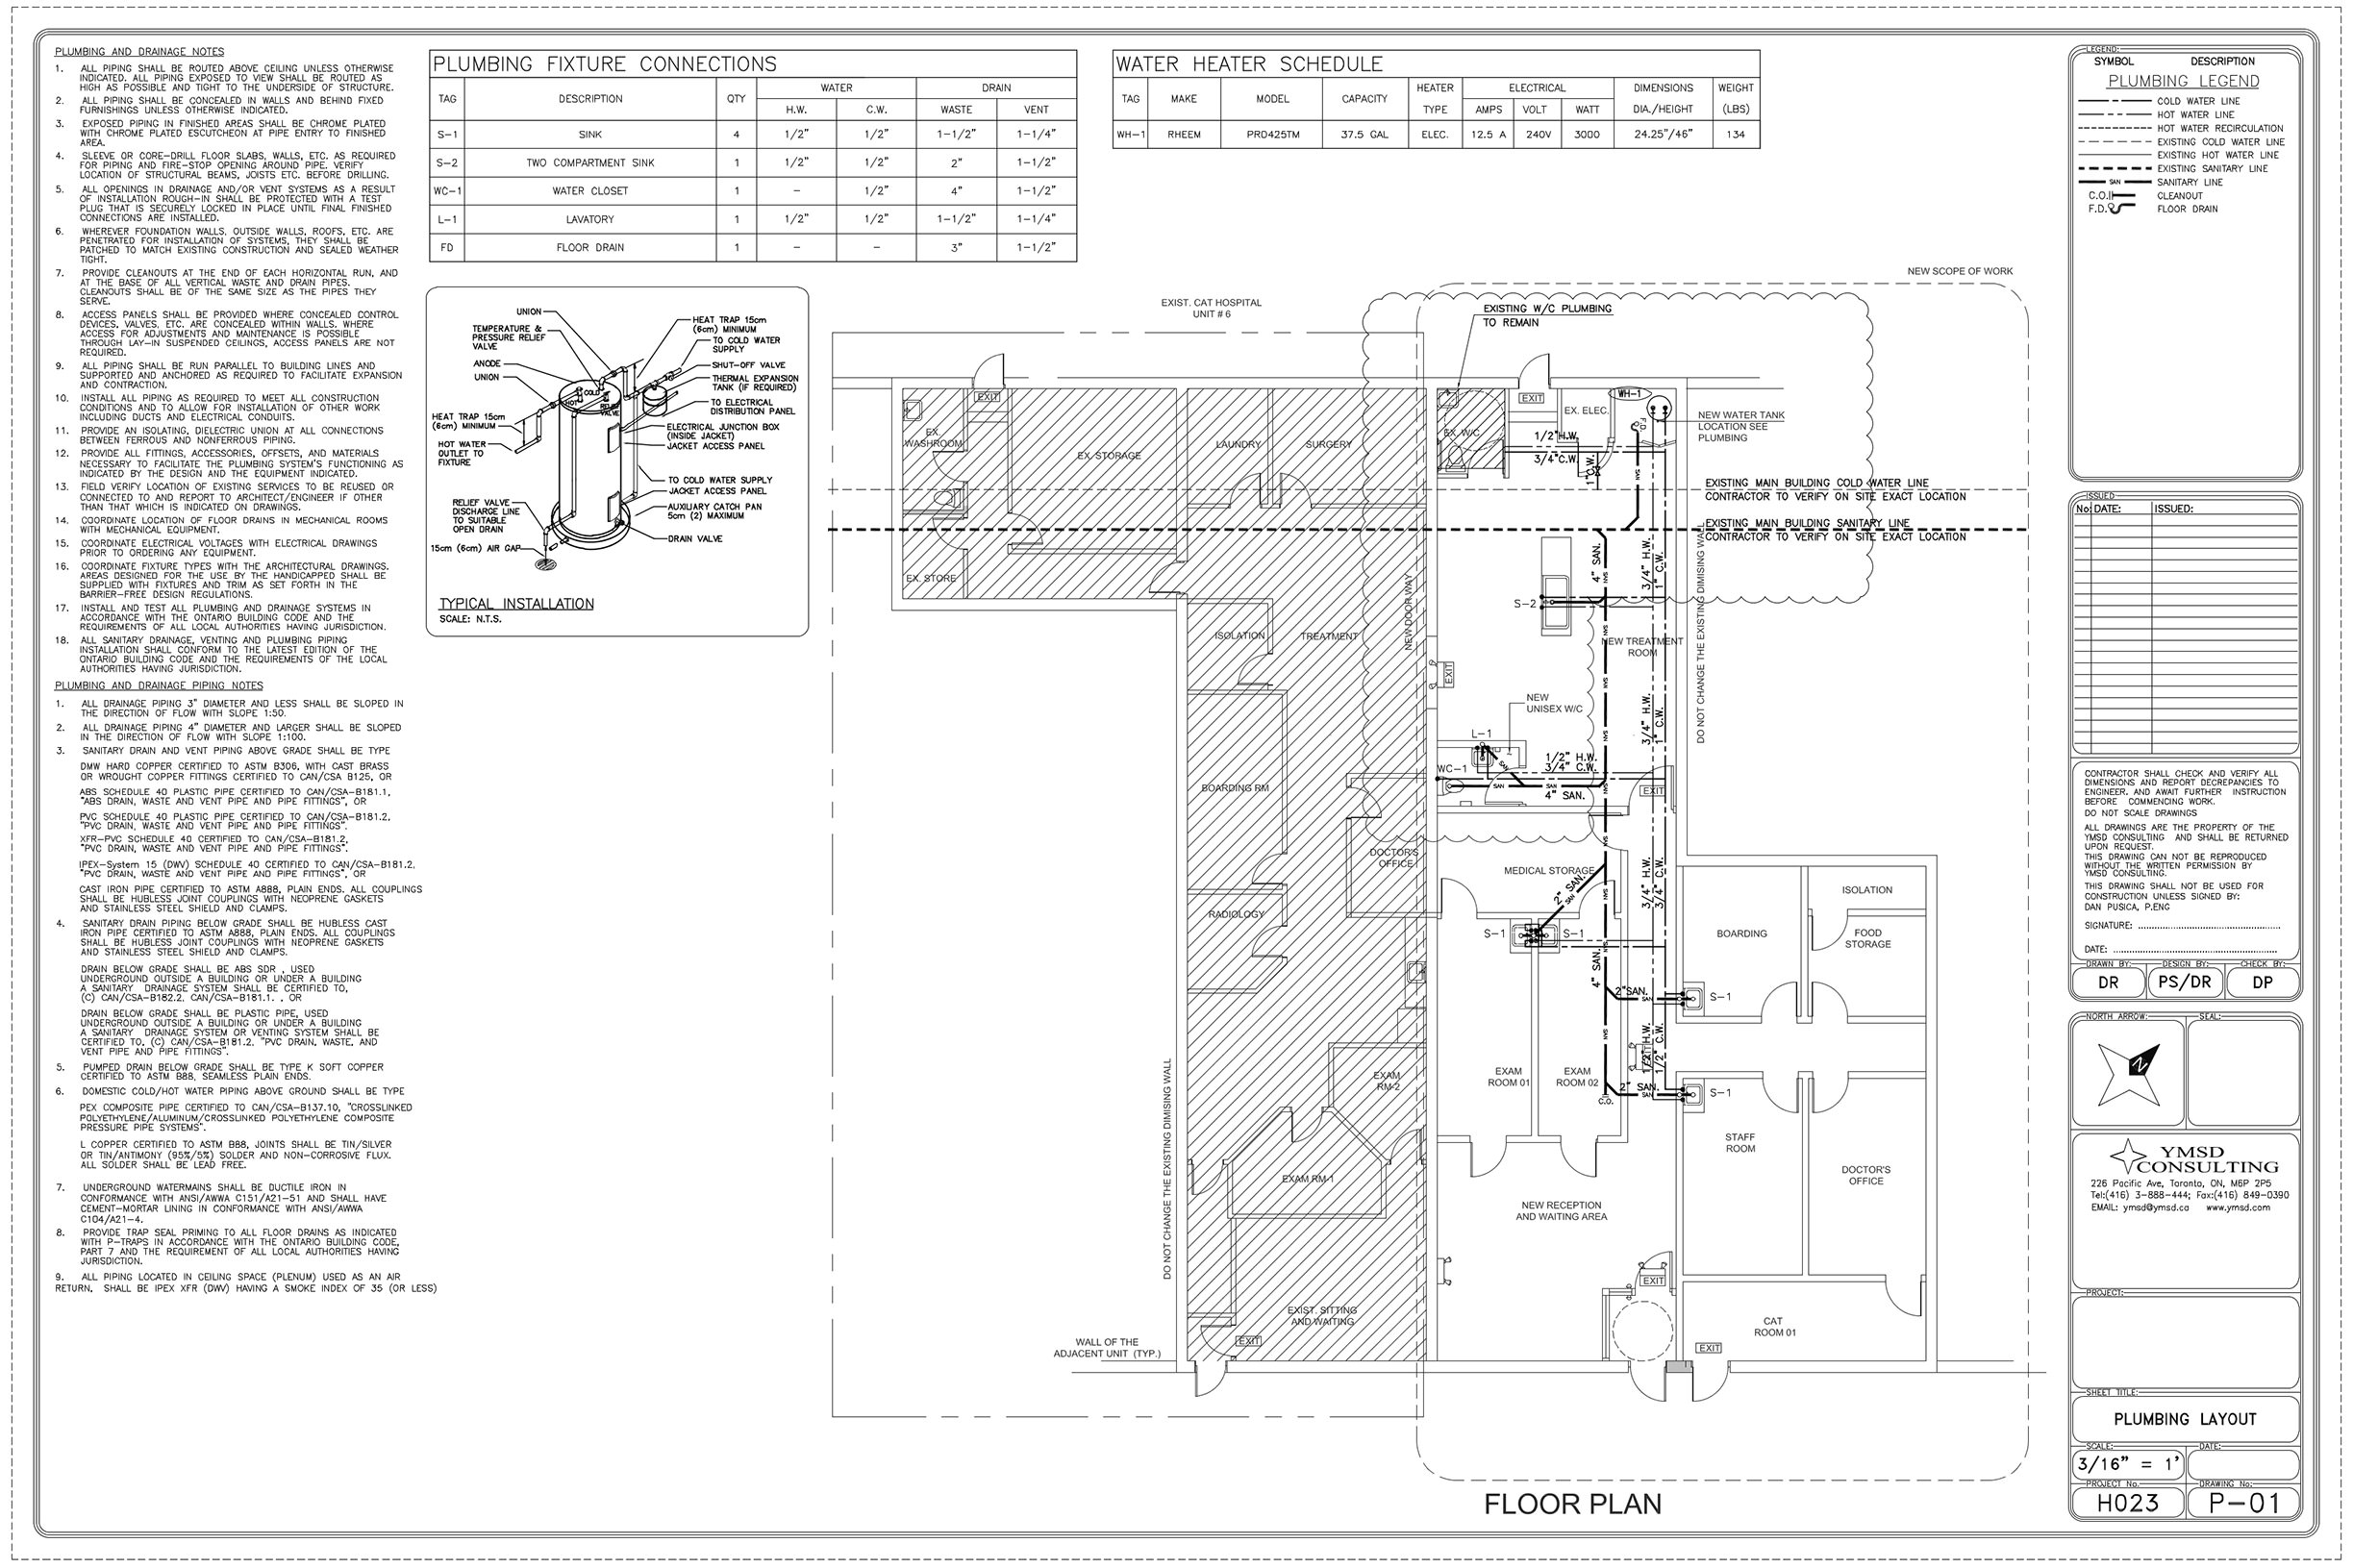 Hvac Design In Toronto Ymsd Consulting Drawings Pictures Ymsd1 Mini Ymsd2